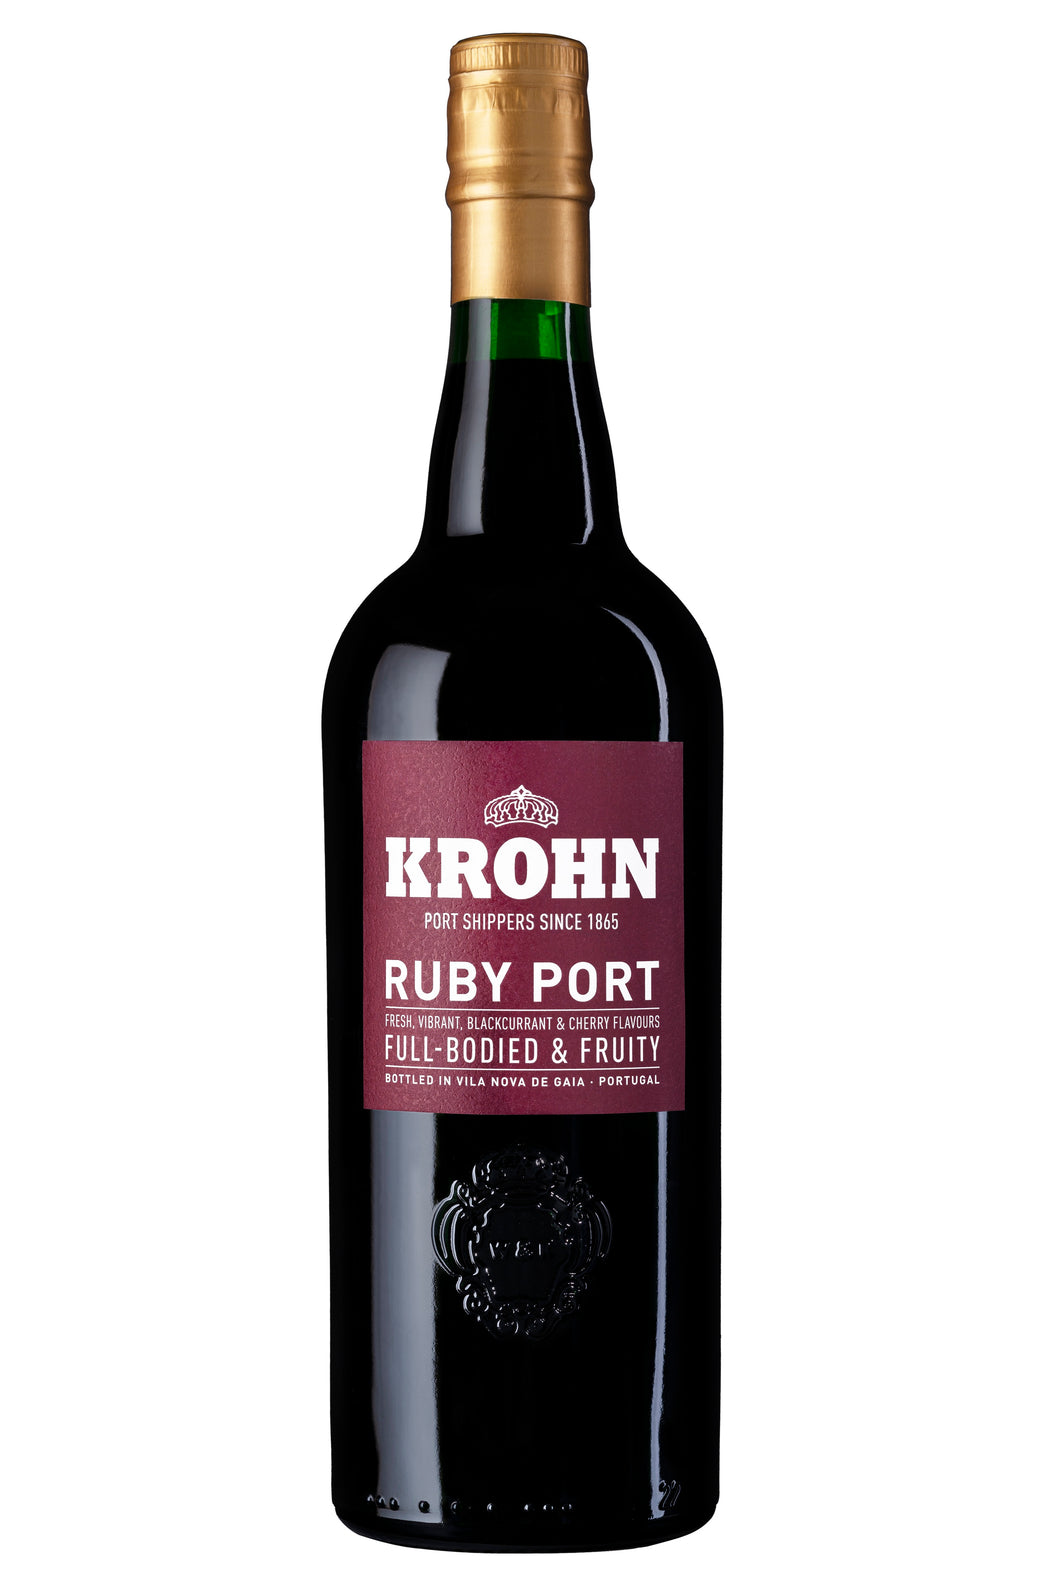 KROHN AMBASSADOR RUBY PORT - Vino Wines